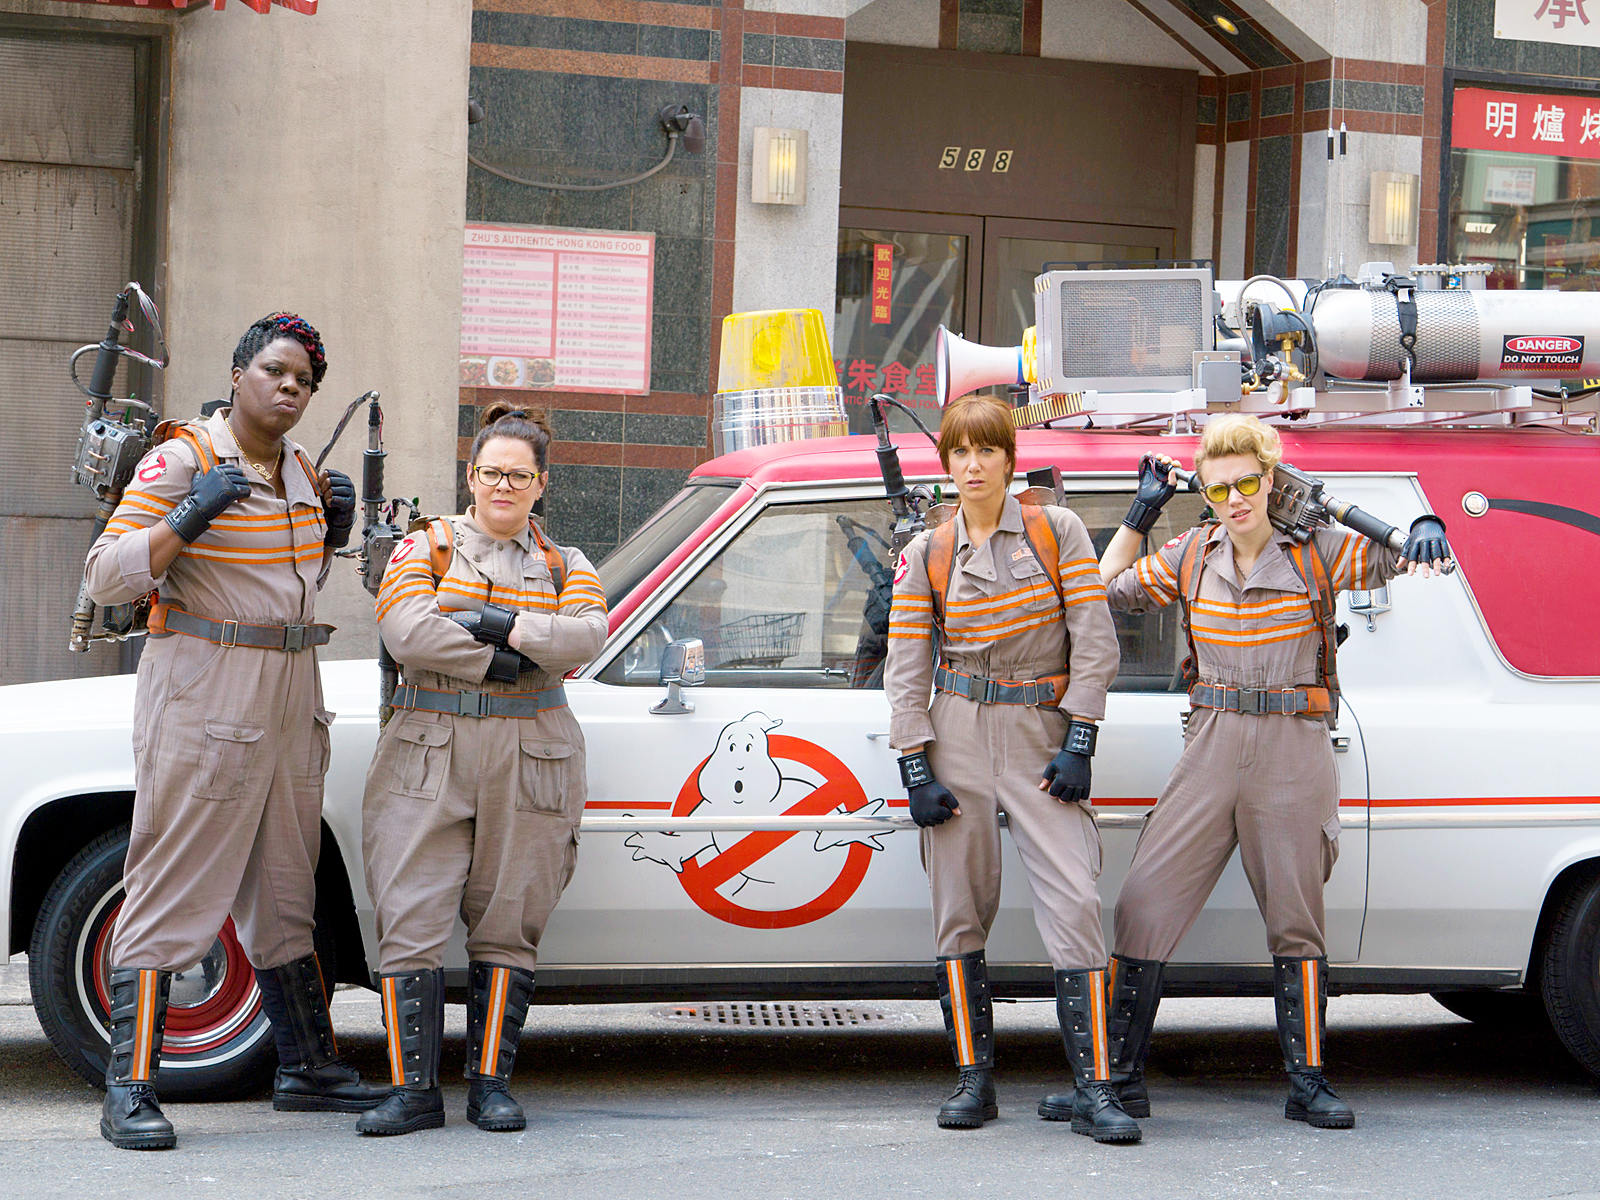 Confira o trailer do novo Ghostbusters!